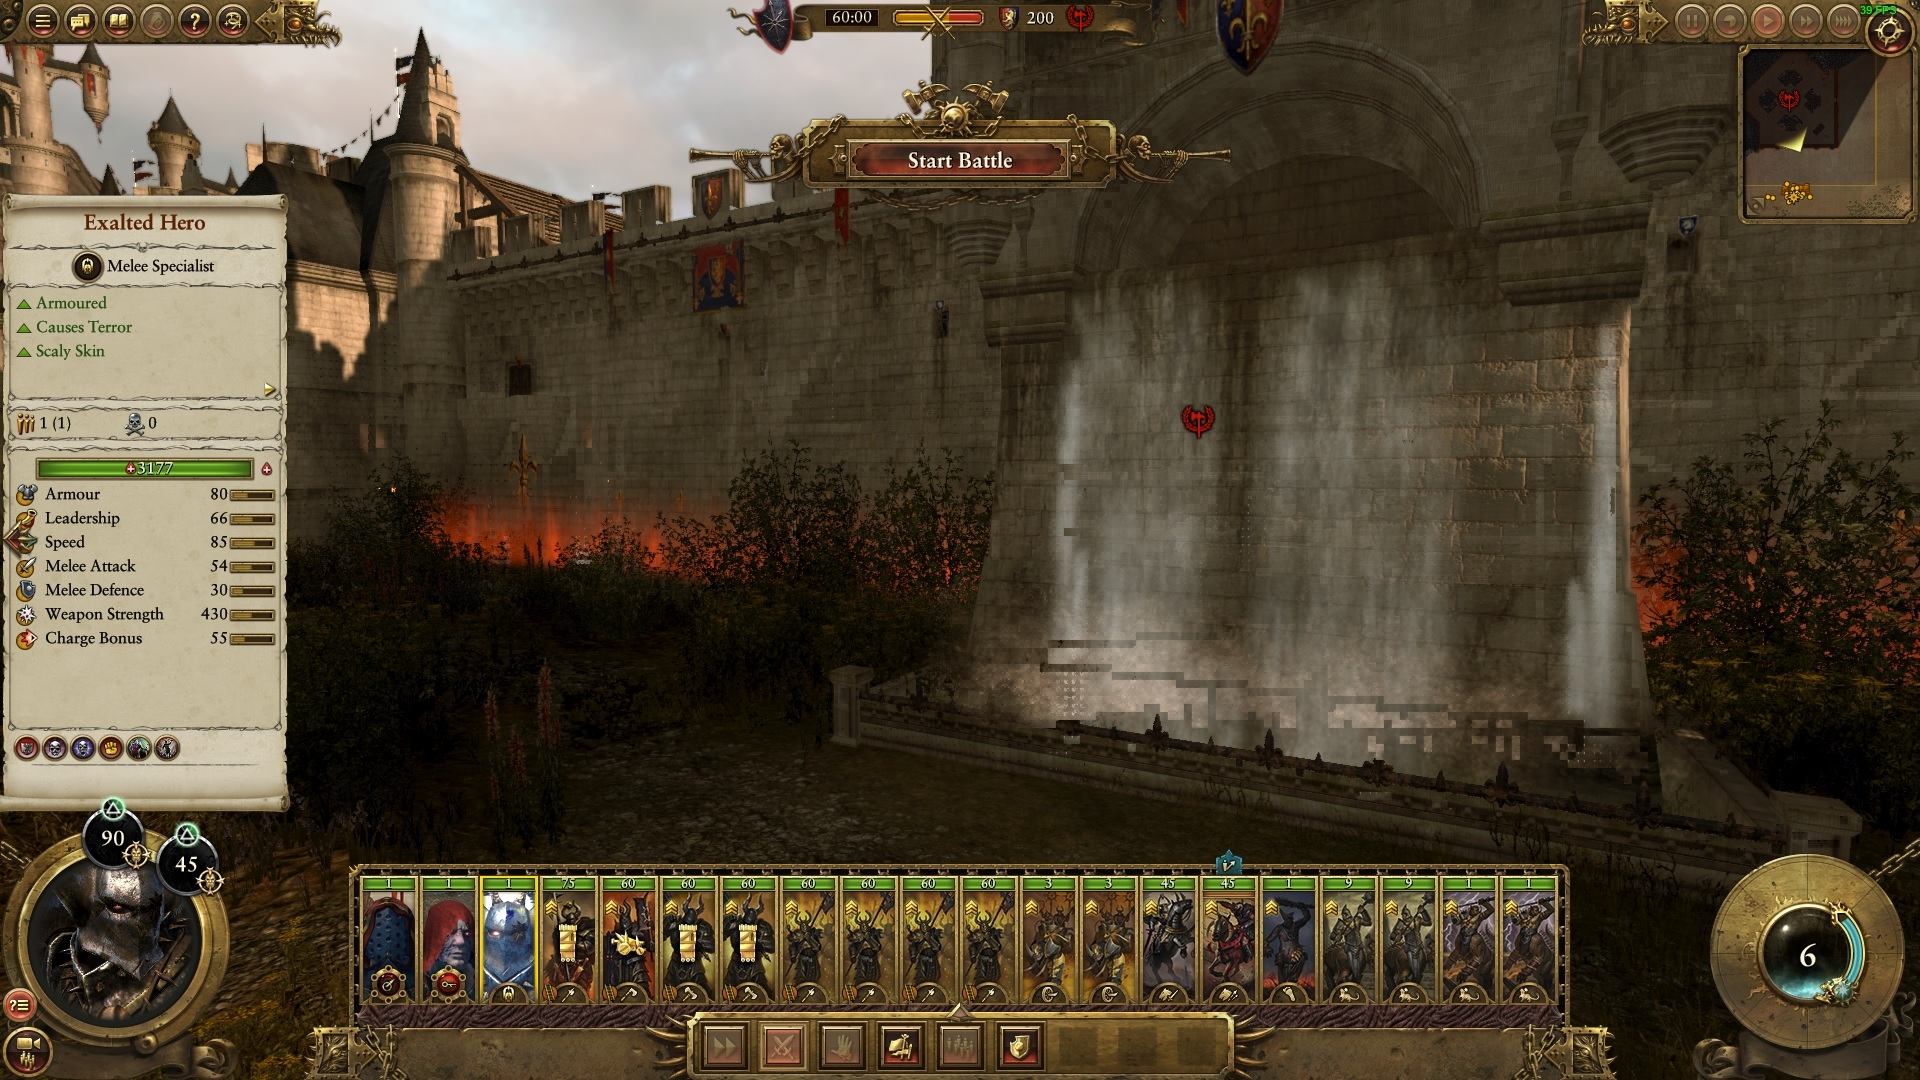 AMD R9 390 Dx12 graphics issues (lots of pixels) — Total War